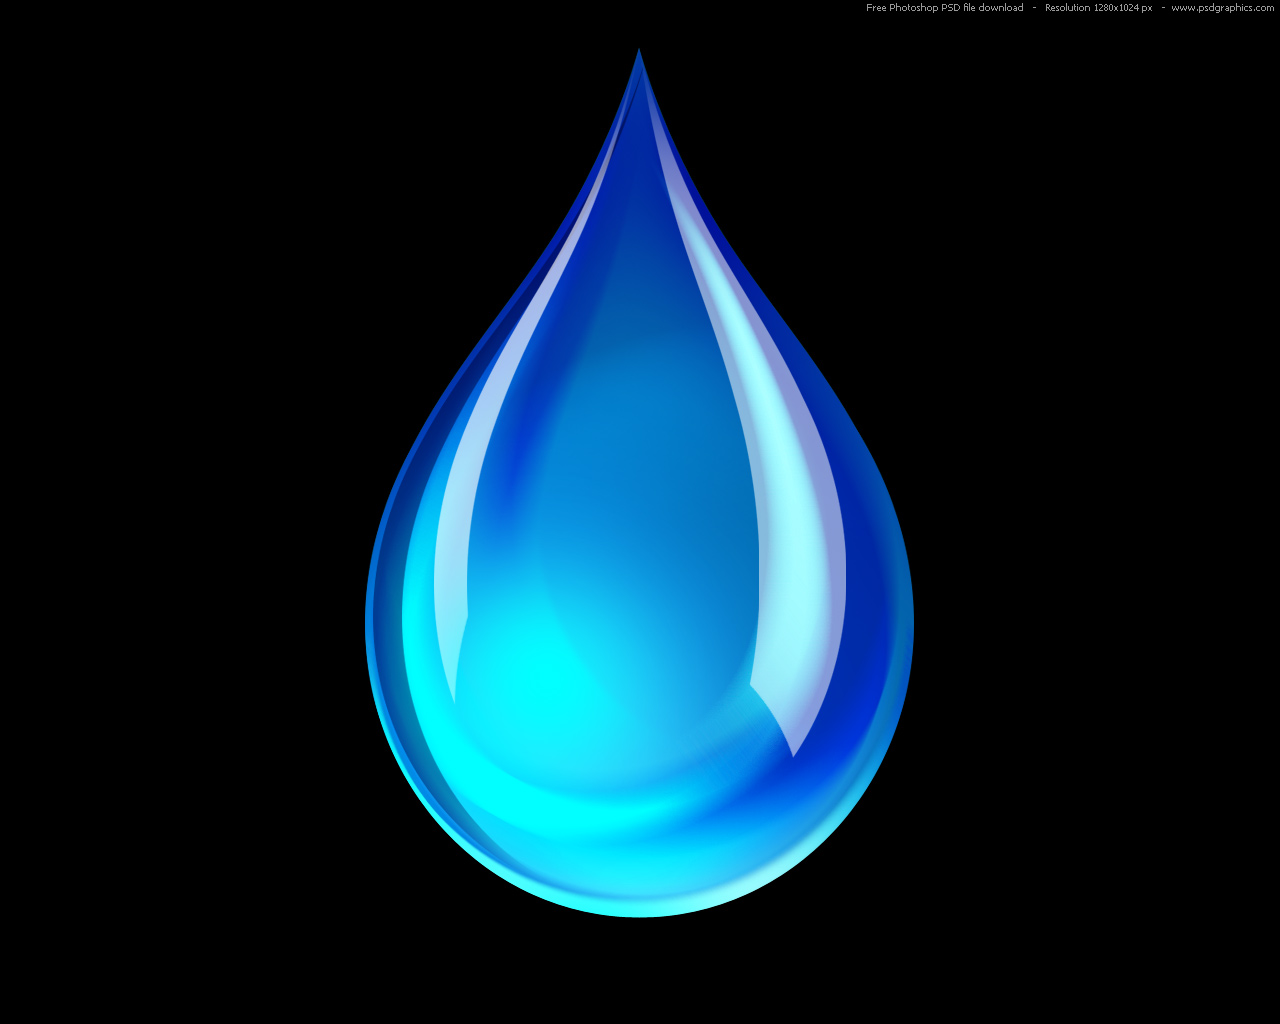 Drop Of Water Falling From A Leaf Dark Background Wallpaper 19 Water Droplet Icon No Background Images Droplet Water